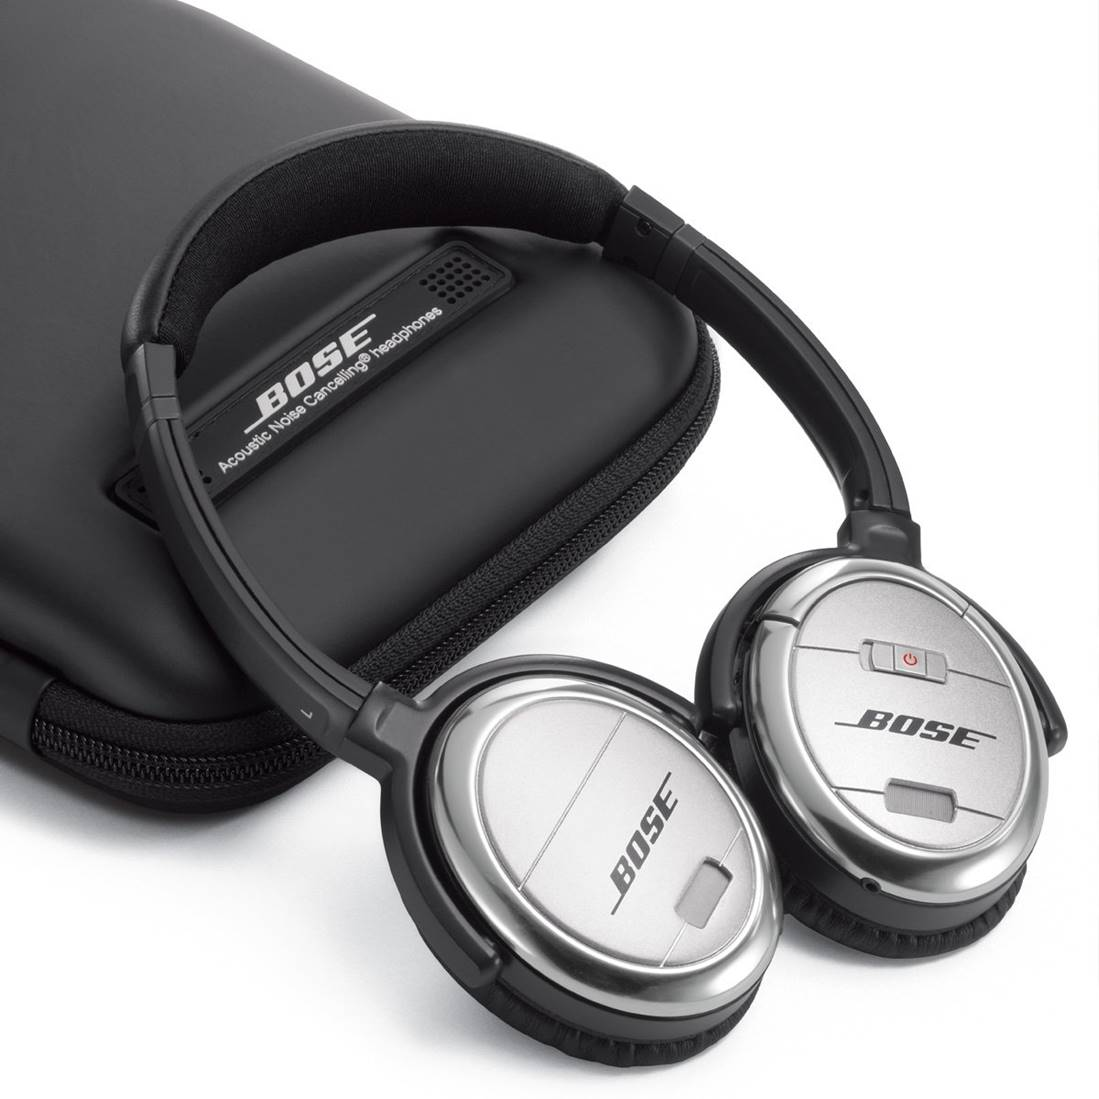 Bose QuietComfort 3 Headphones